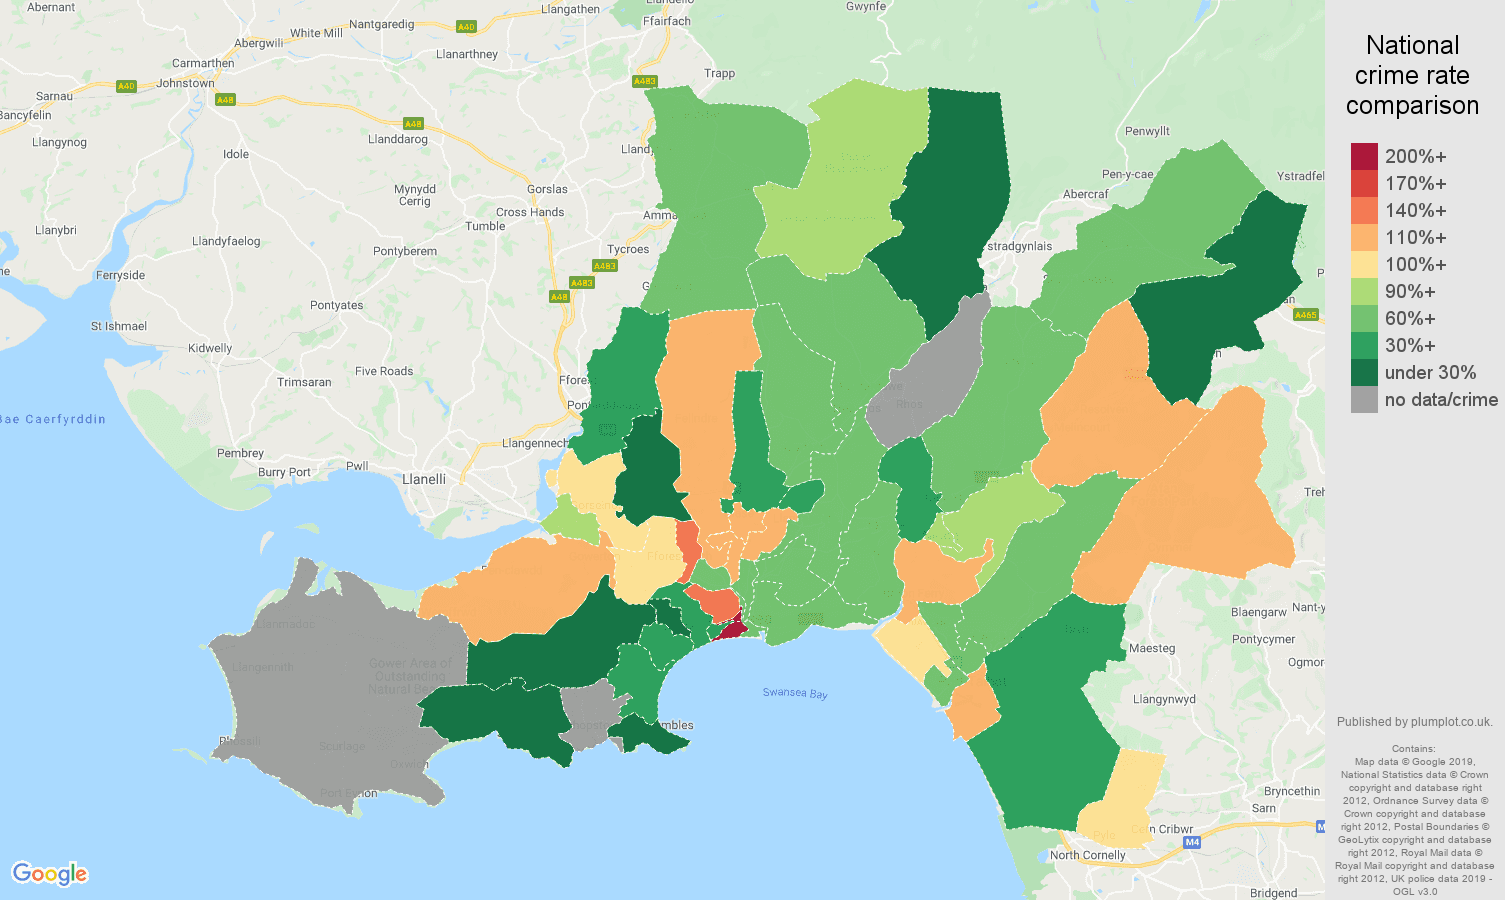 West Glamorgan other crime rate comparison map